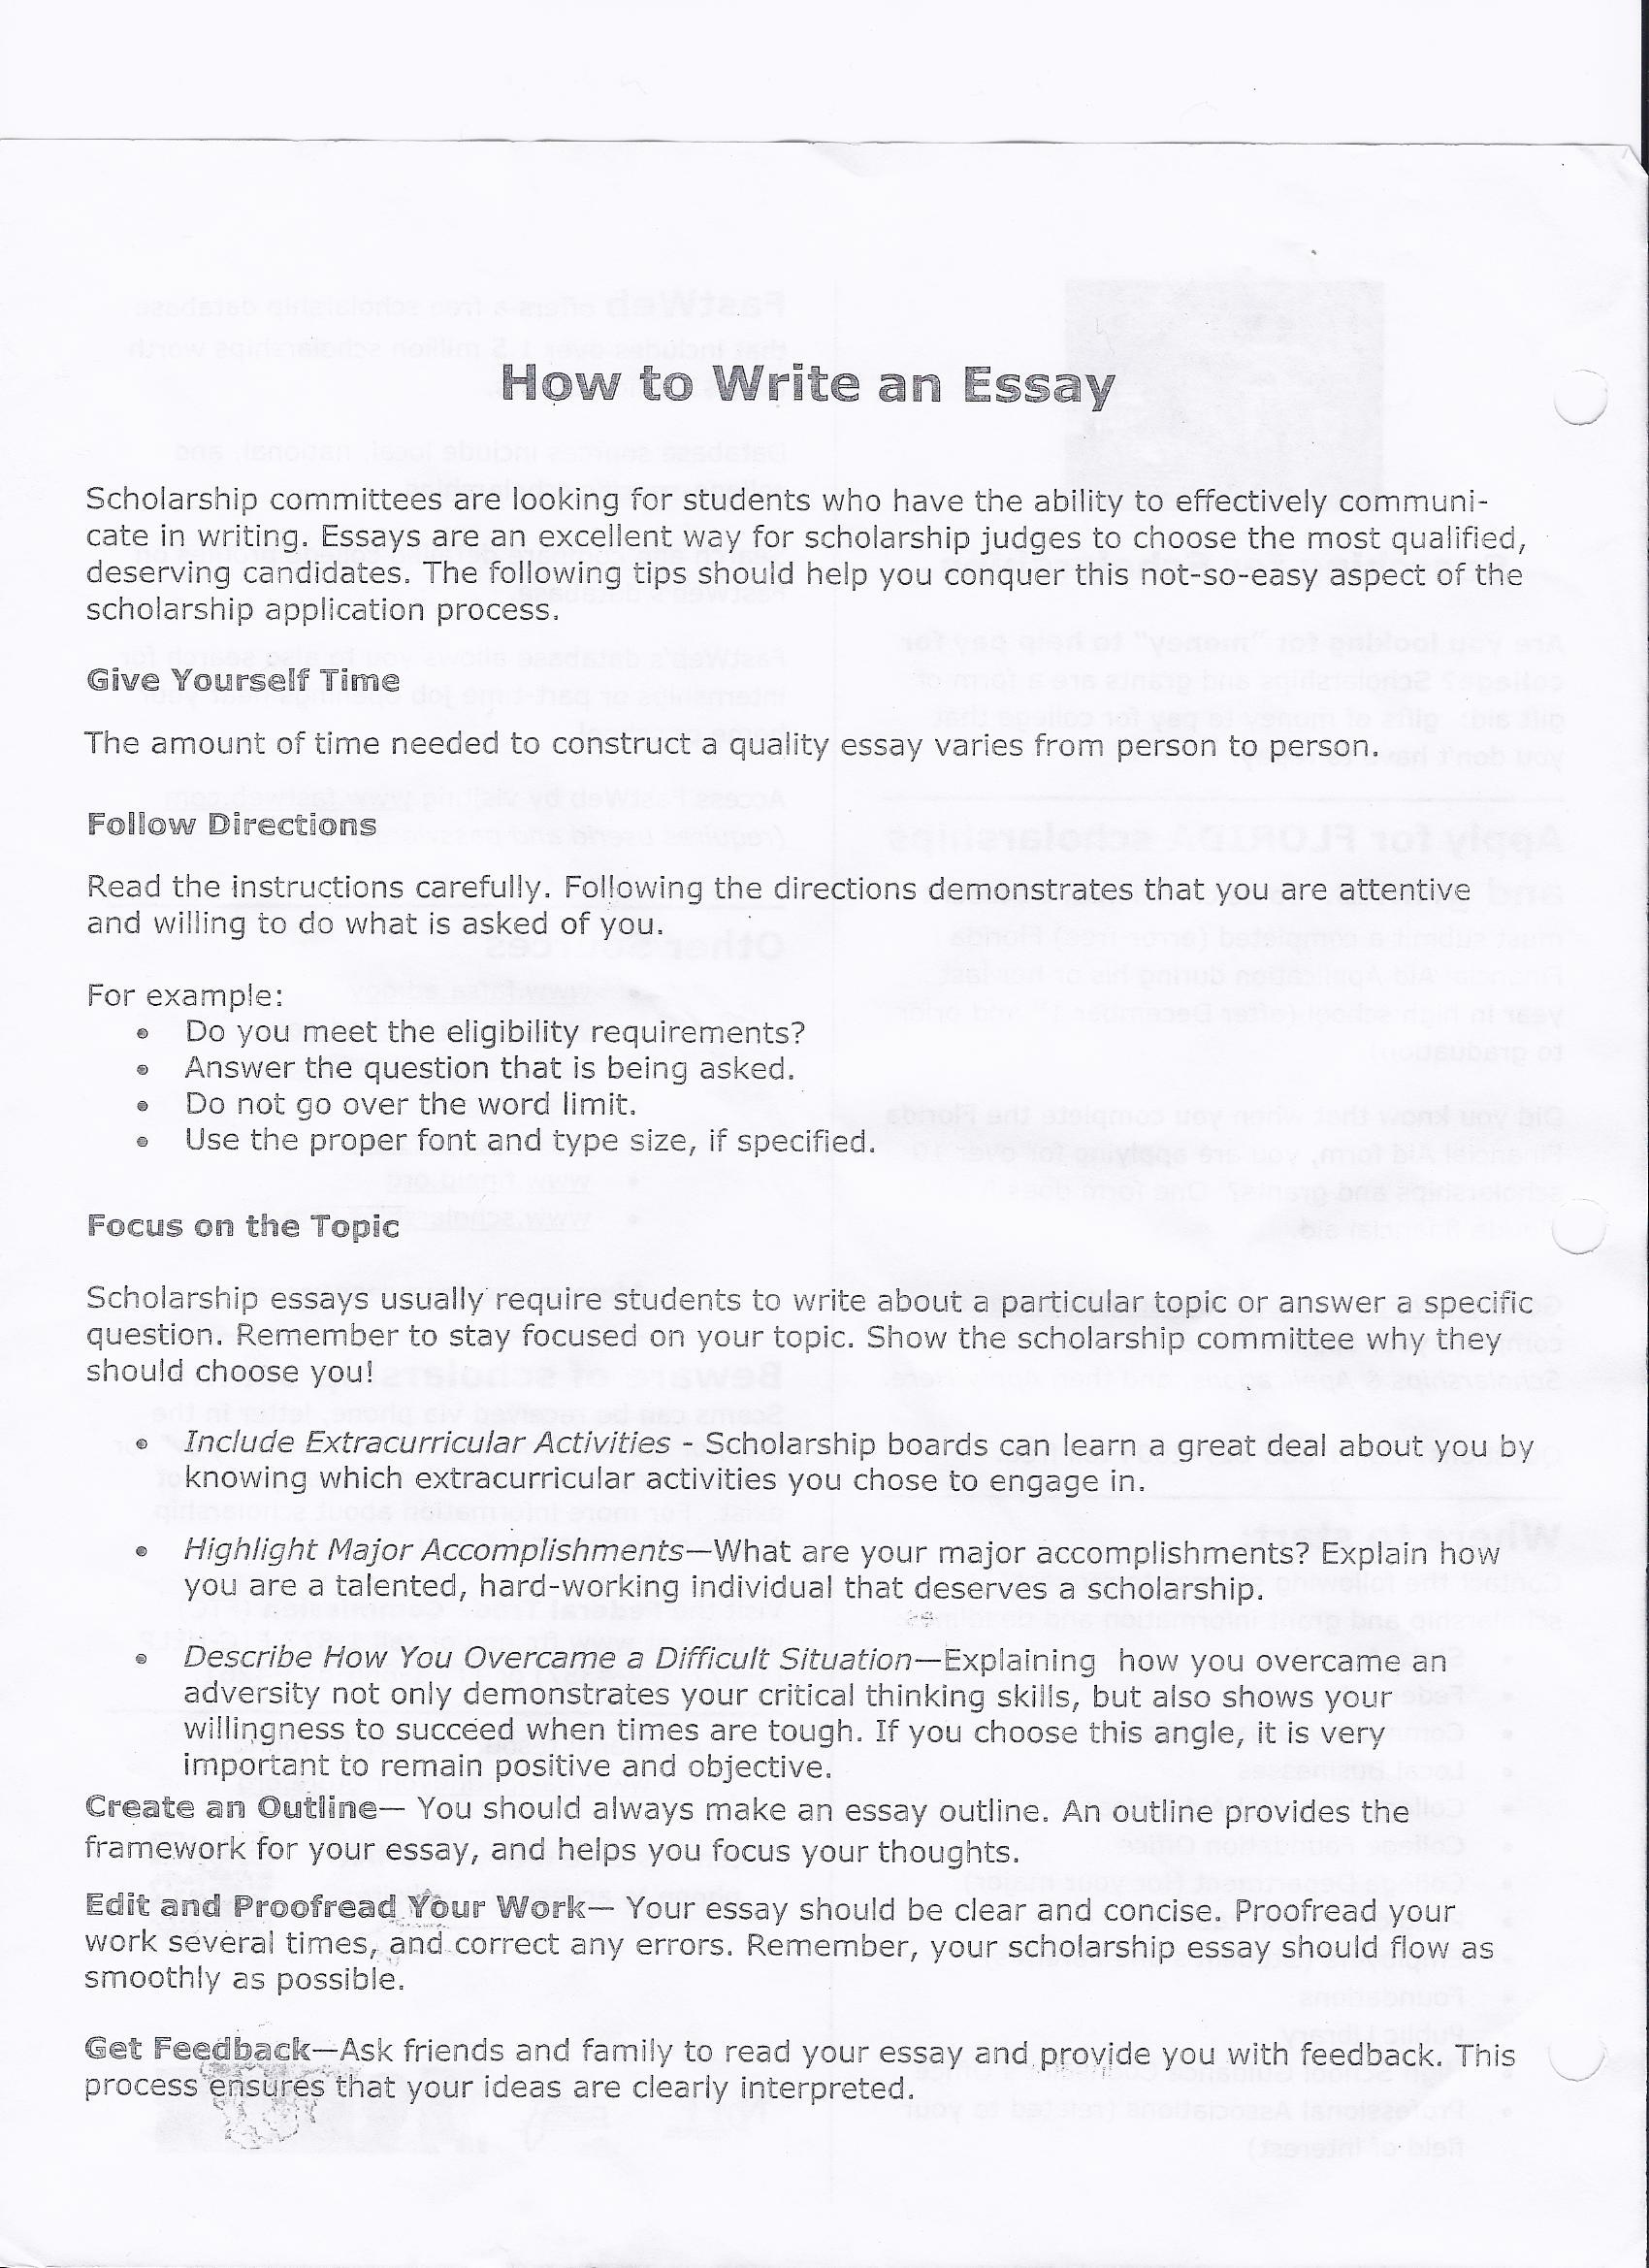 homesick essay essay on exam essay exams student services the  collage essay collage essay collage essay jonathon lay personal collage essaycollage essay buy key stage geography